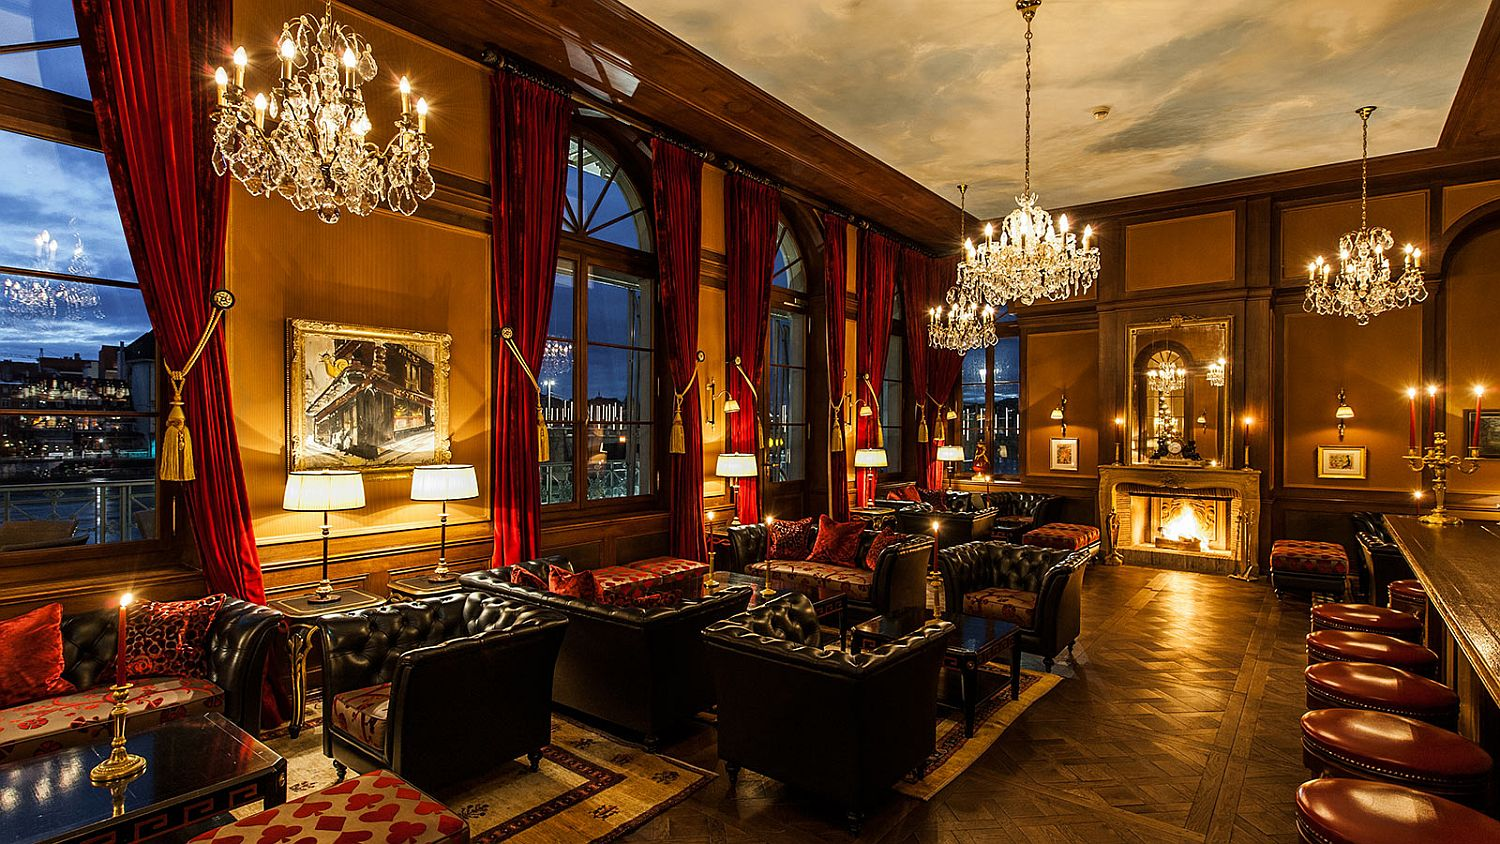 Live a life of luxury at Les Trois Rois, Basel